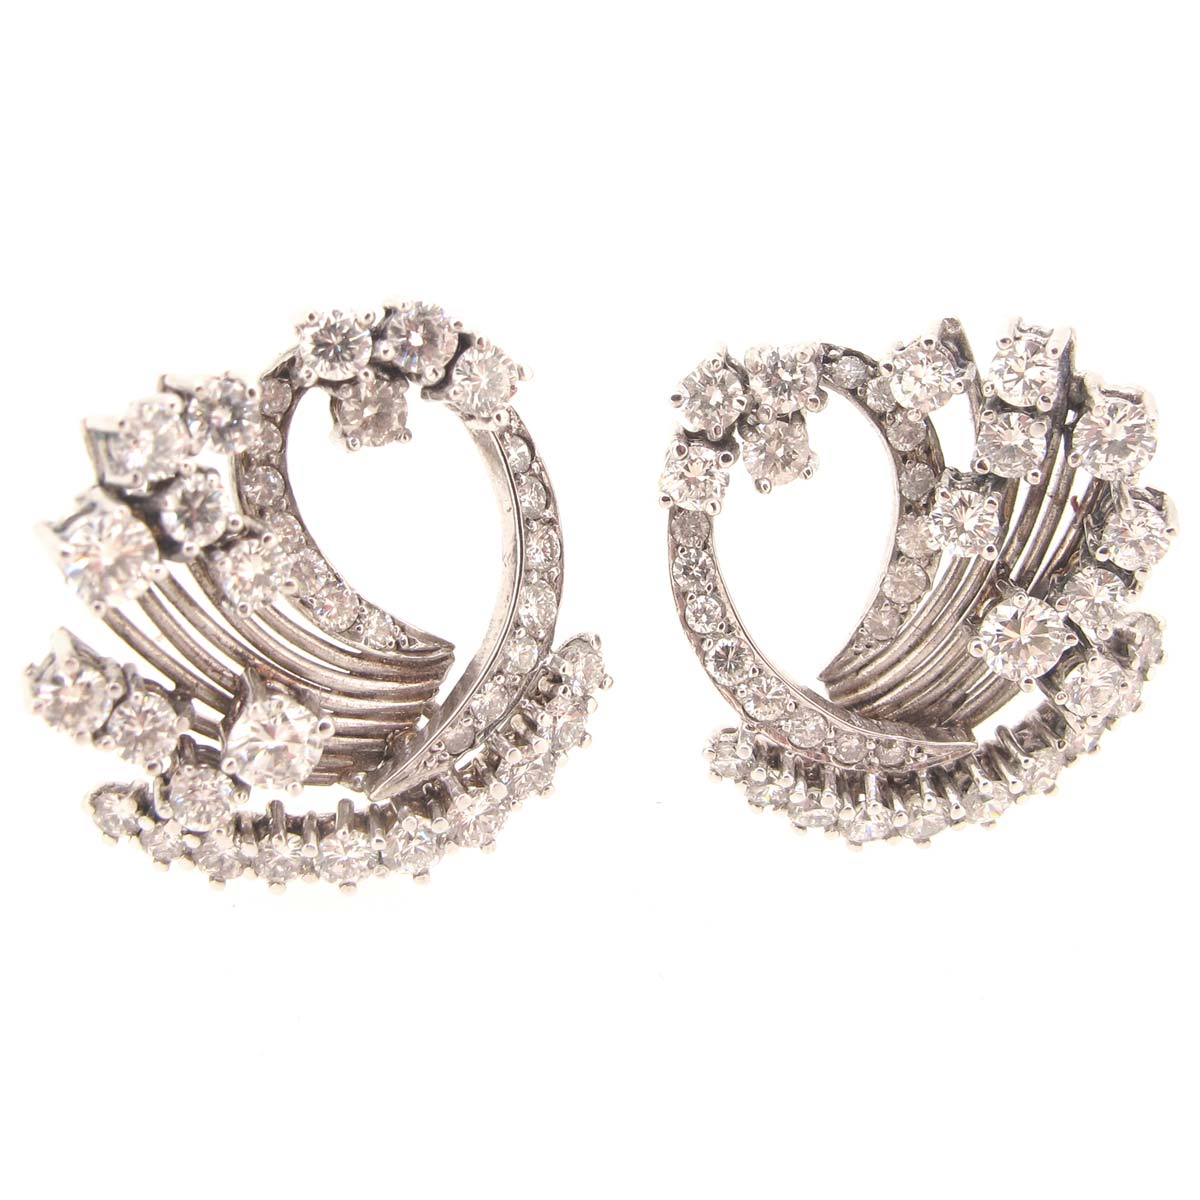 white gold & diamond earrings